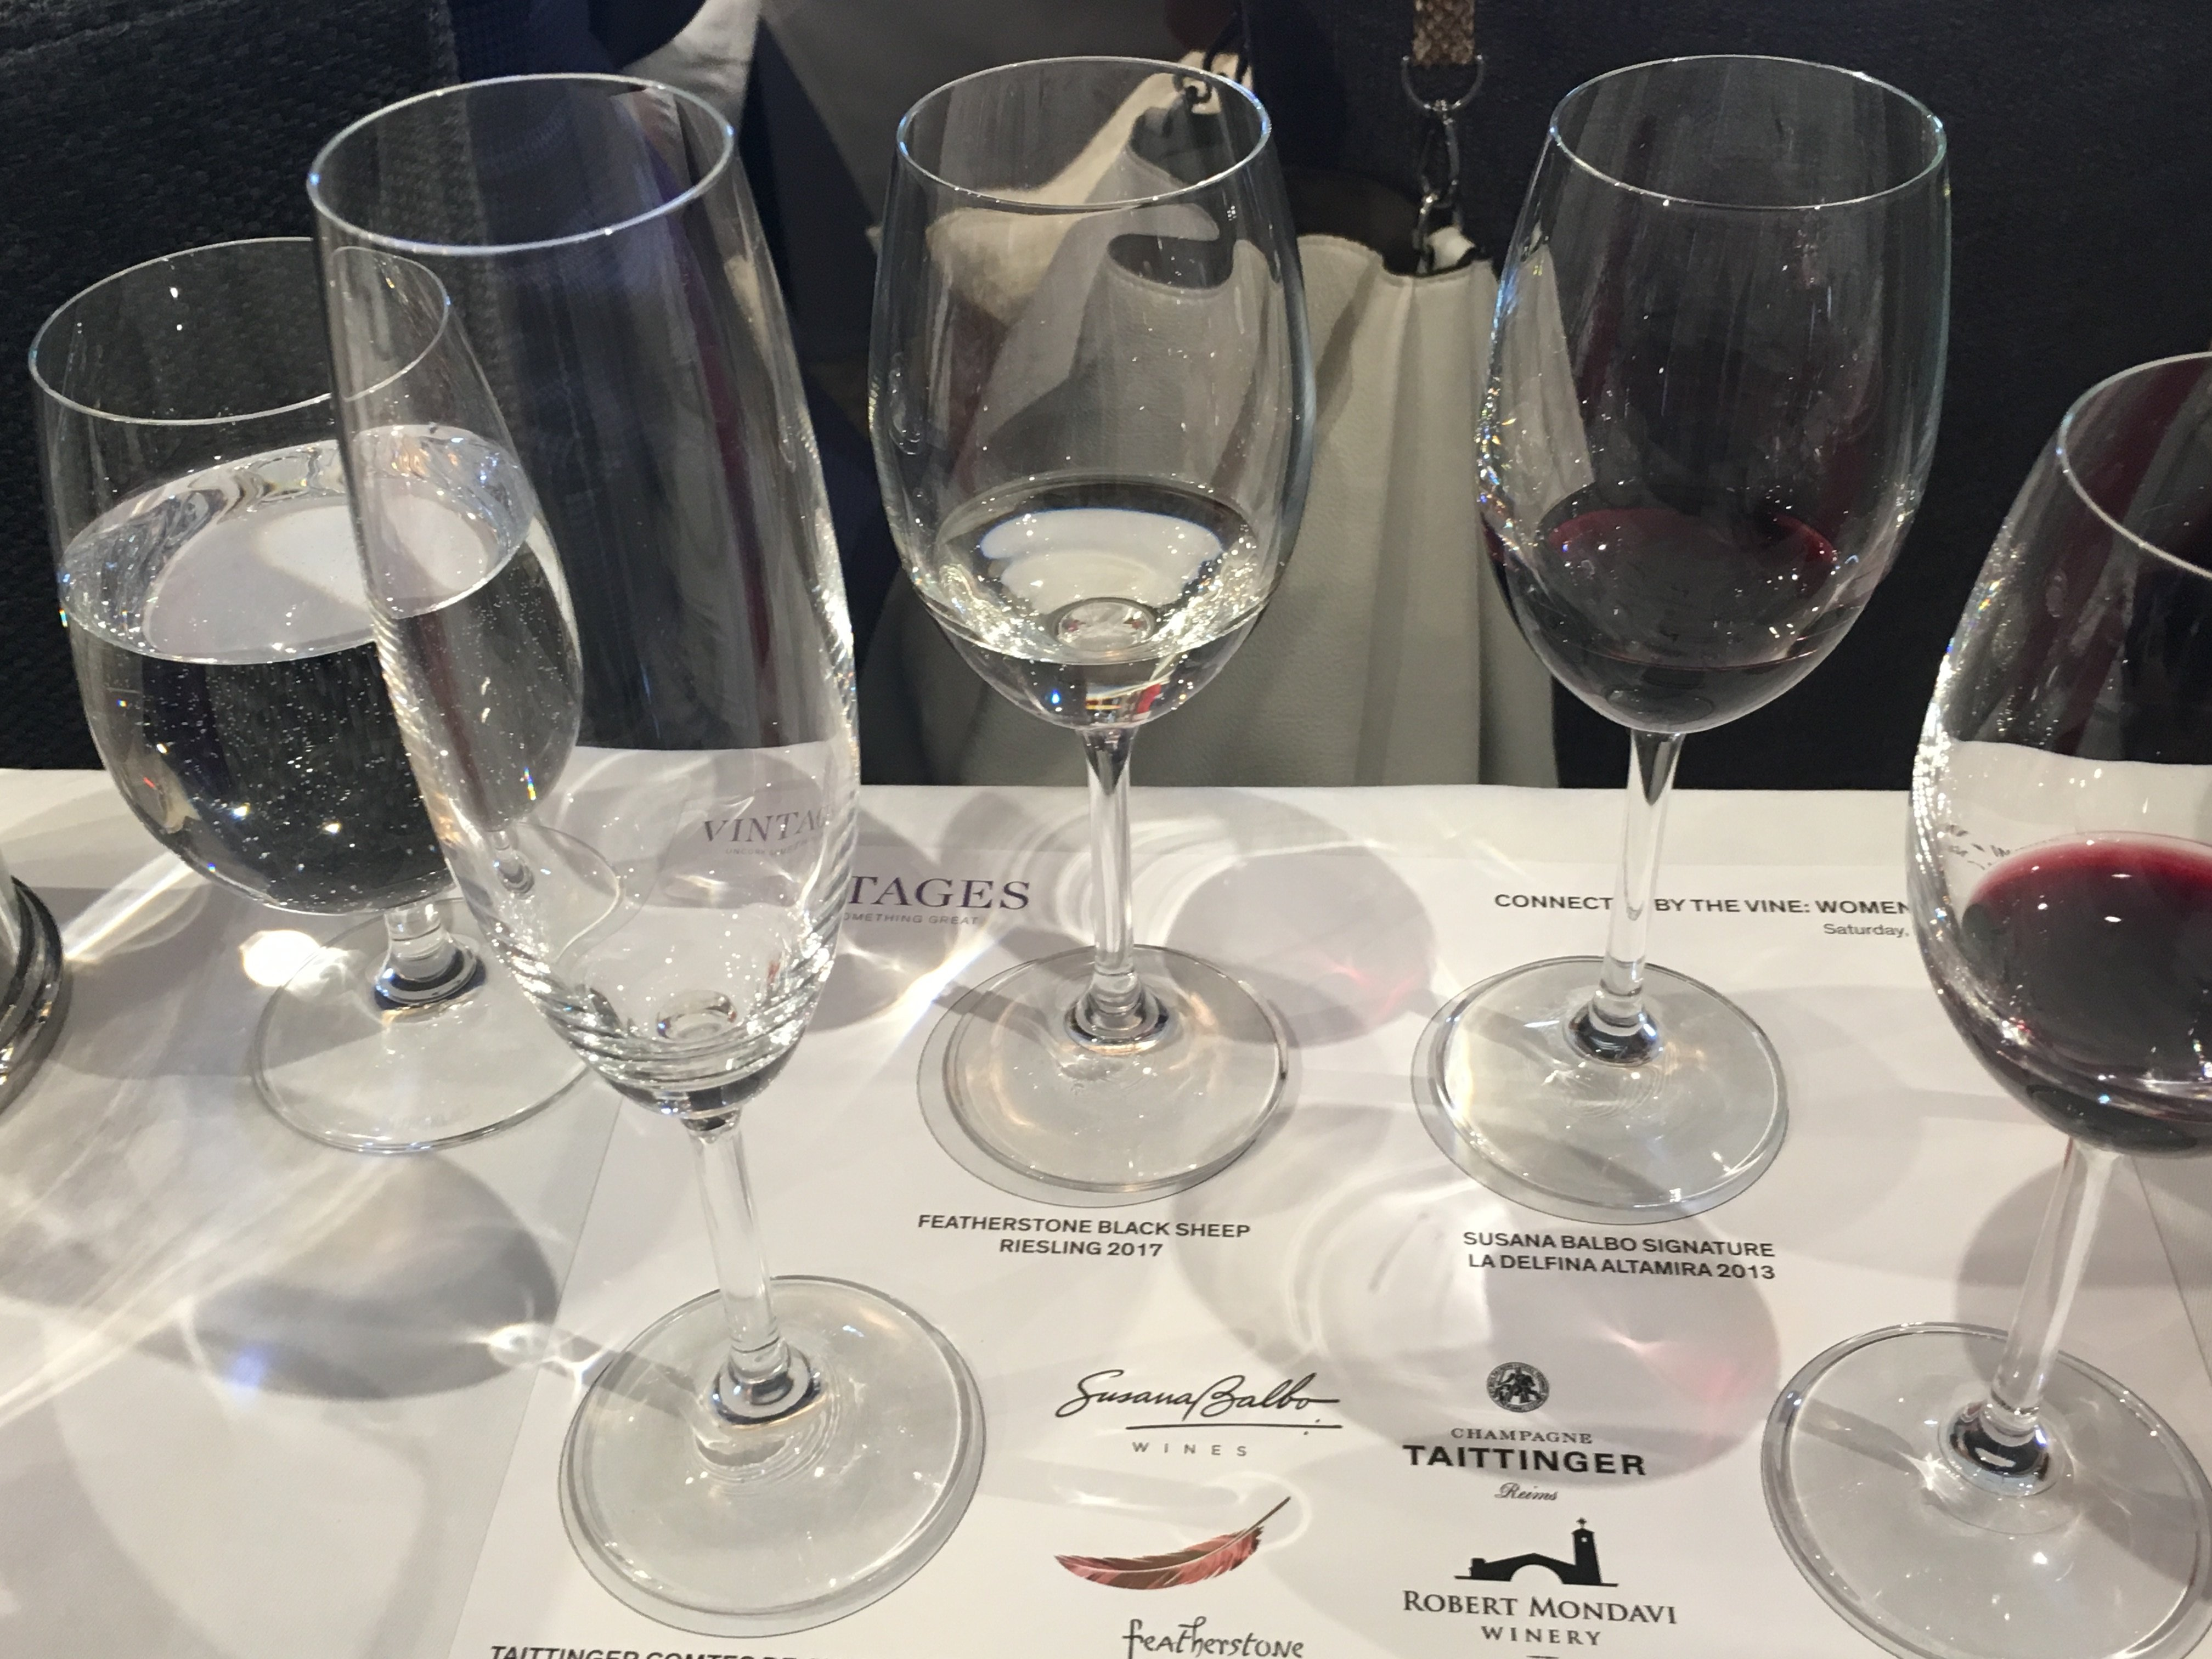 Structured Tasting included: Taittinger Comtes de Champagne 2006, Featherstone Blck Sheep Riesling 2017, Susana Balbo Signature La Delfina Altamira 2013 and Robert Mondavi Winery Reserve Cabernet Sauvignon 2014